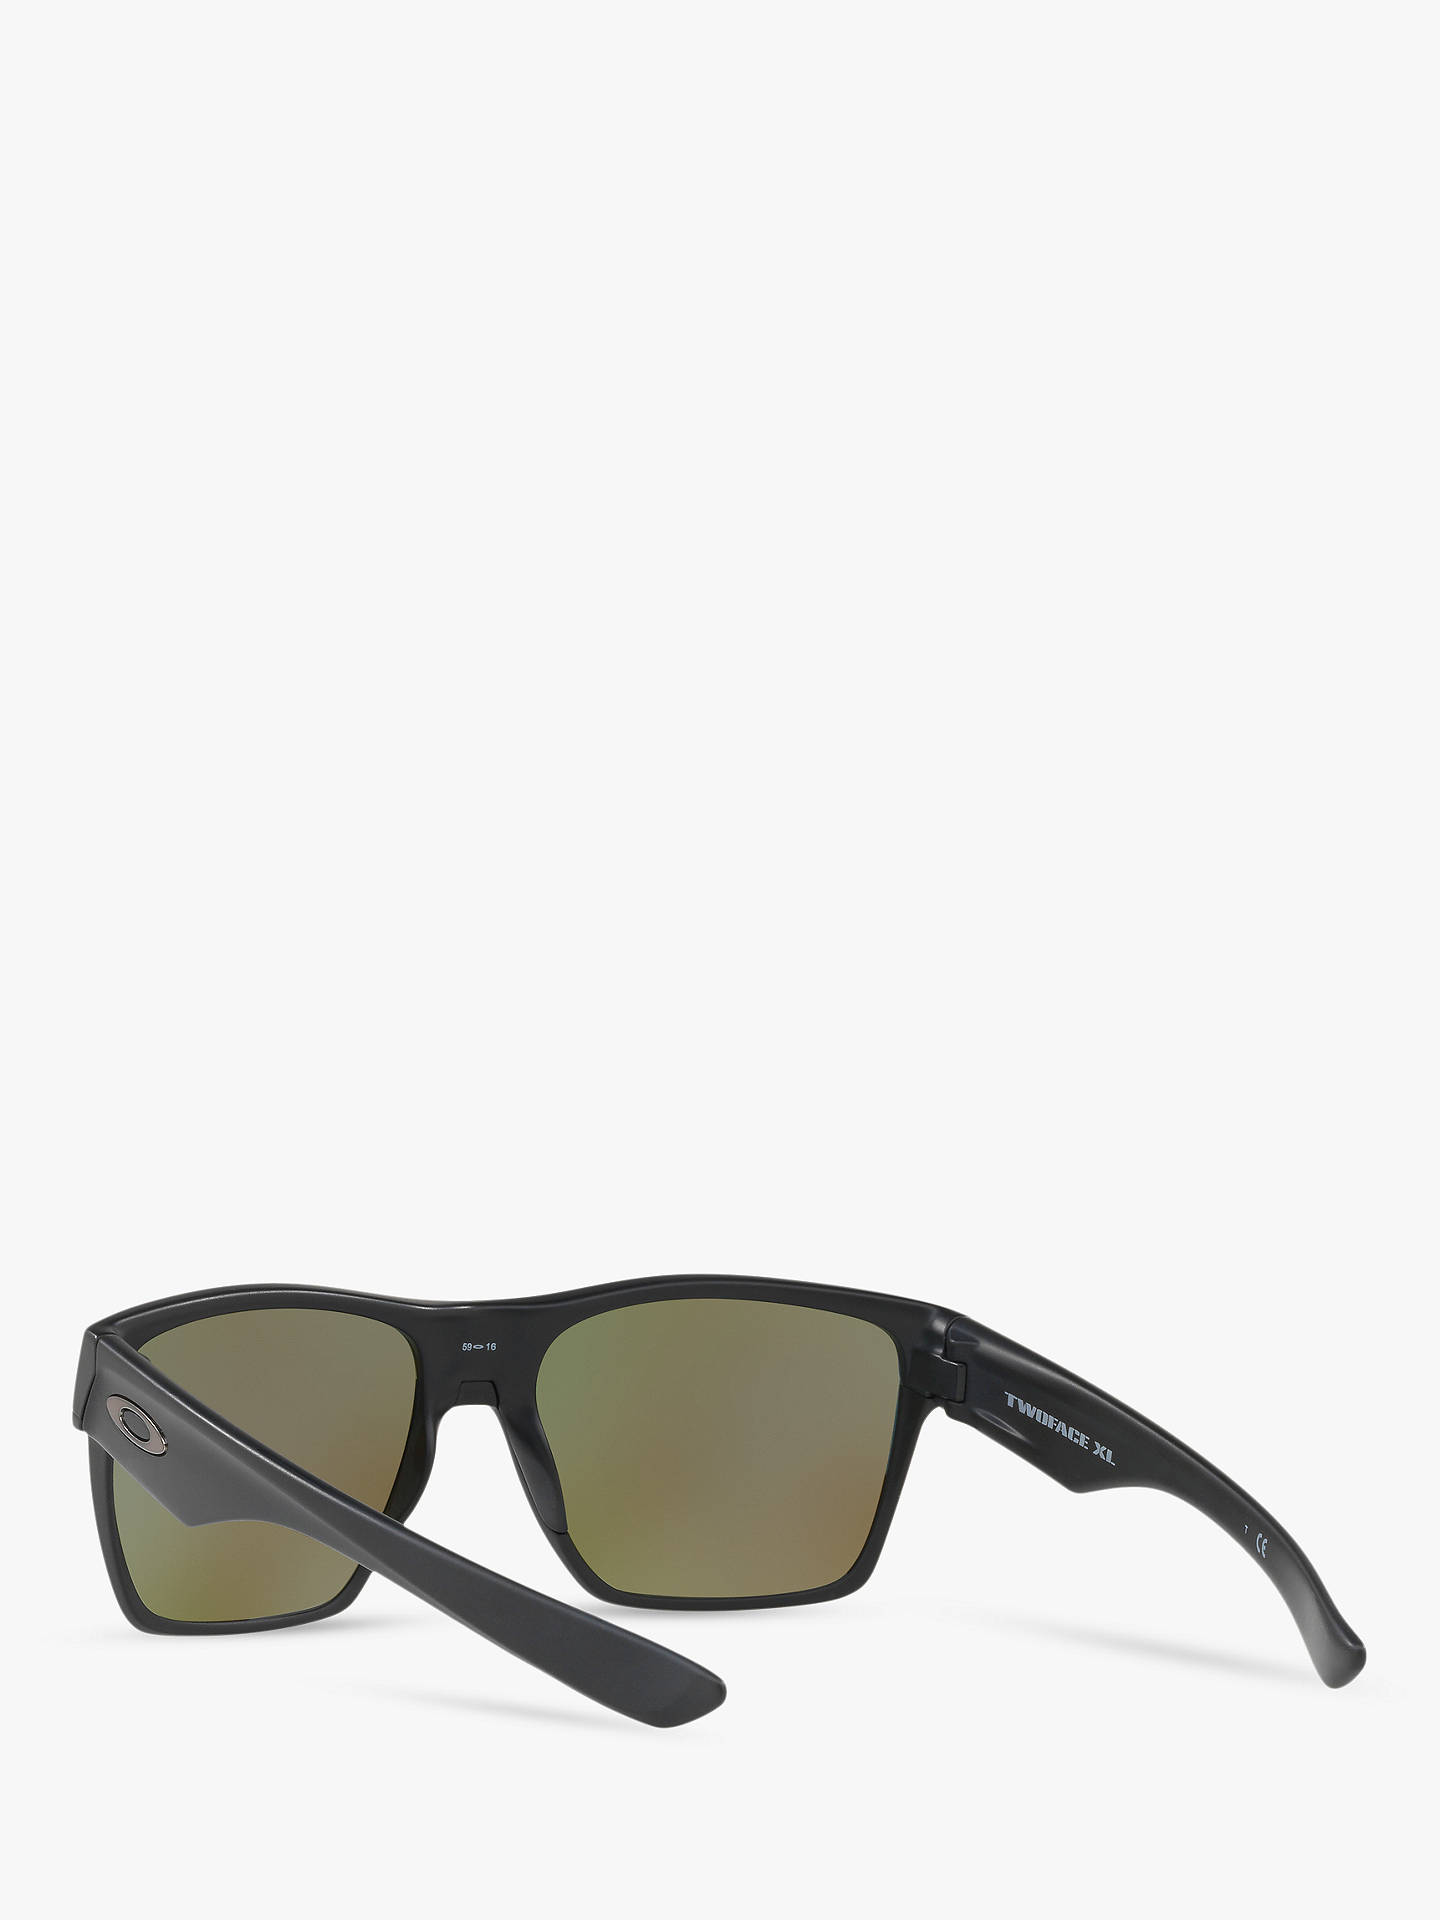 46abc04a0f4 Oakley OO9350 Two Face XL Prizm Polarised Square Sunglasses at John ...